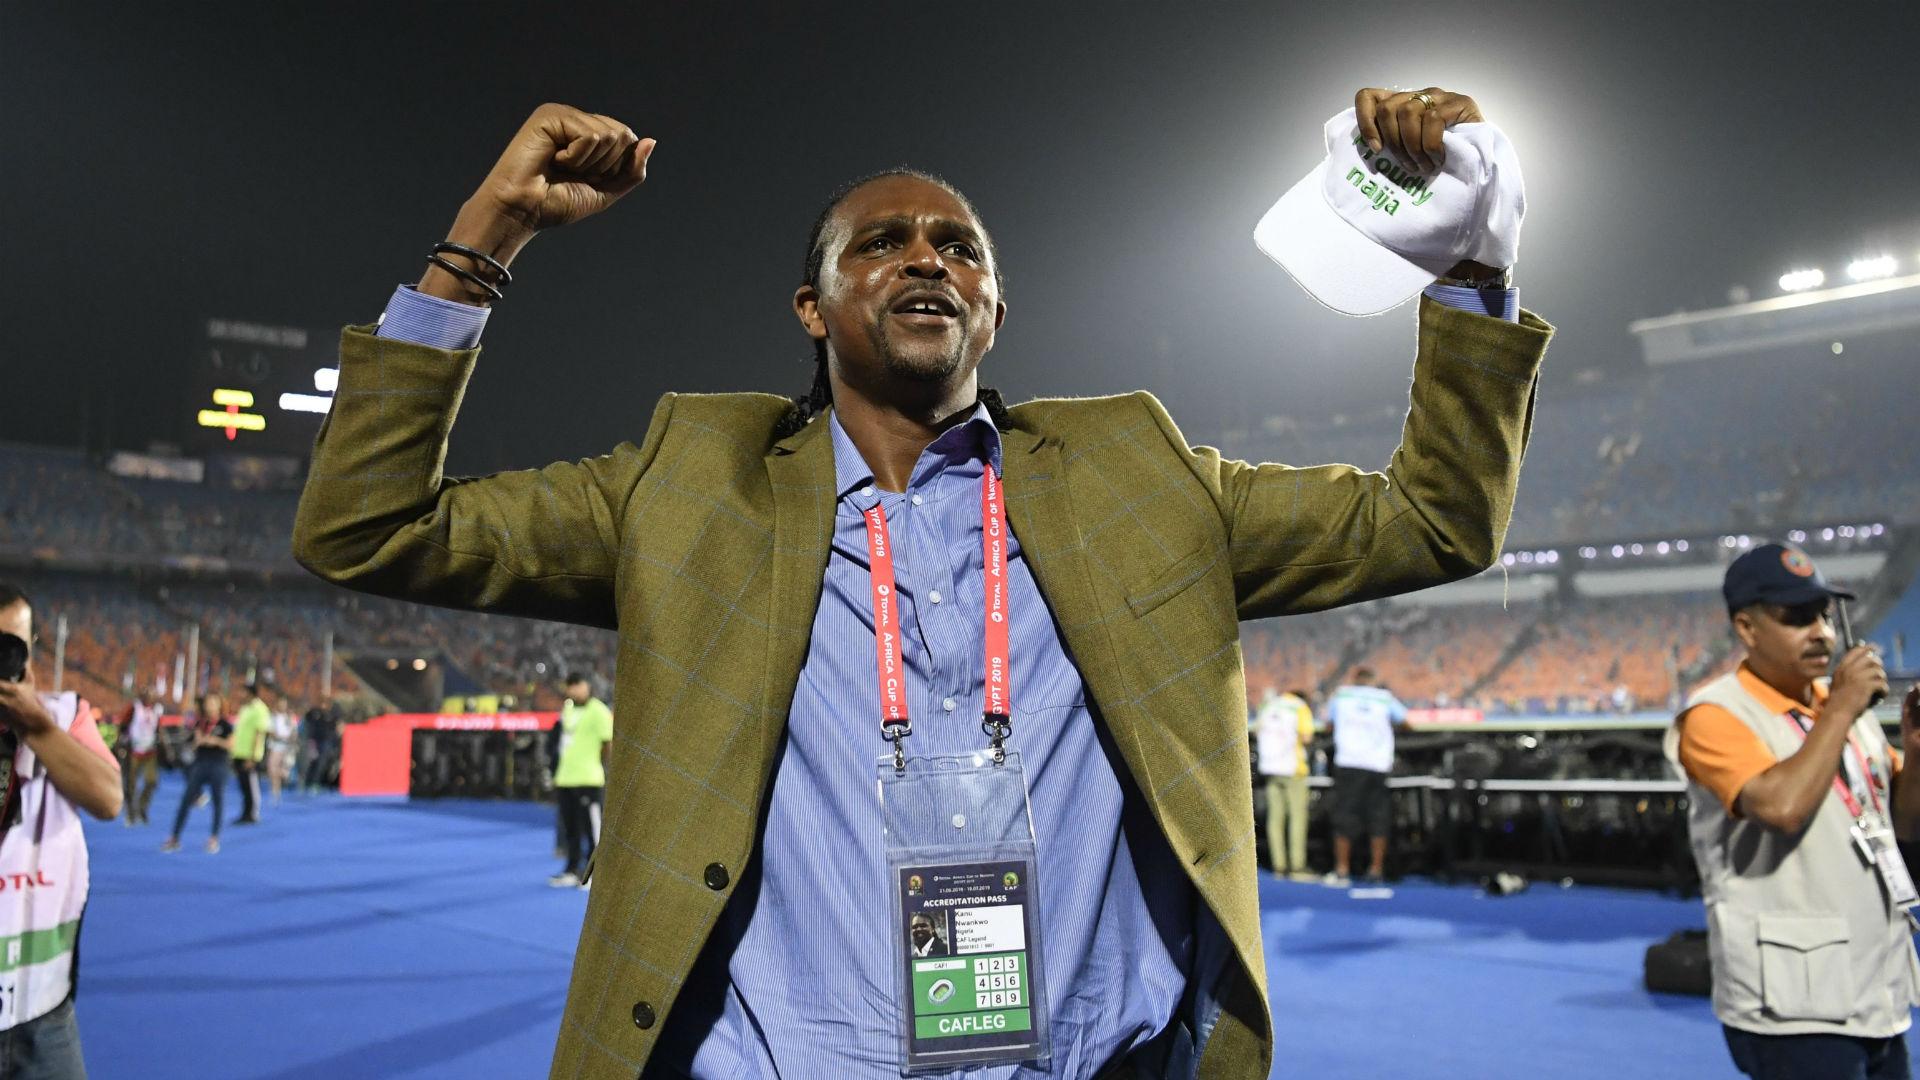 AFCON: Super Eagles must now re-double their efforts - Adepoju